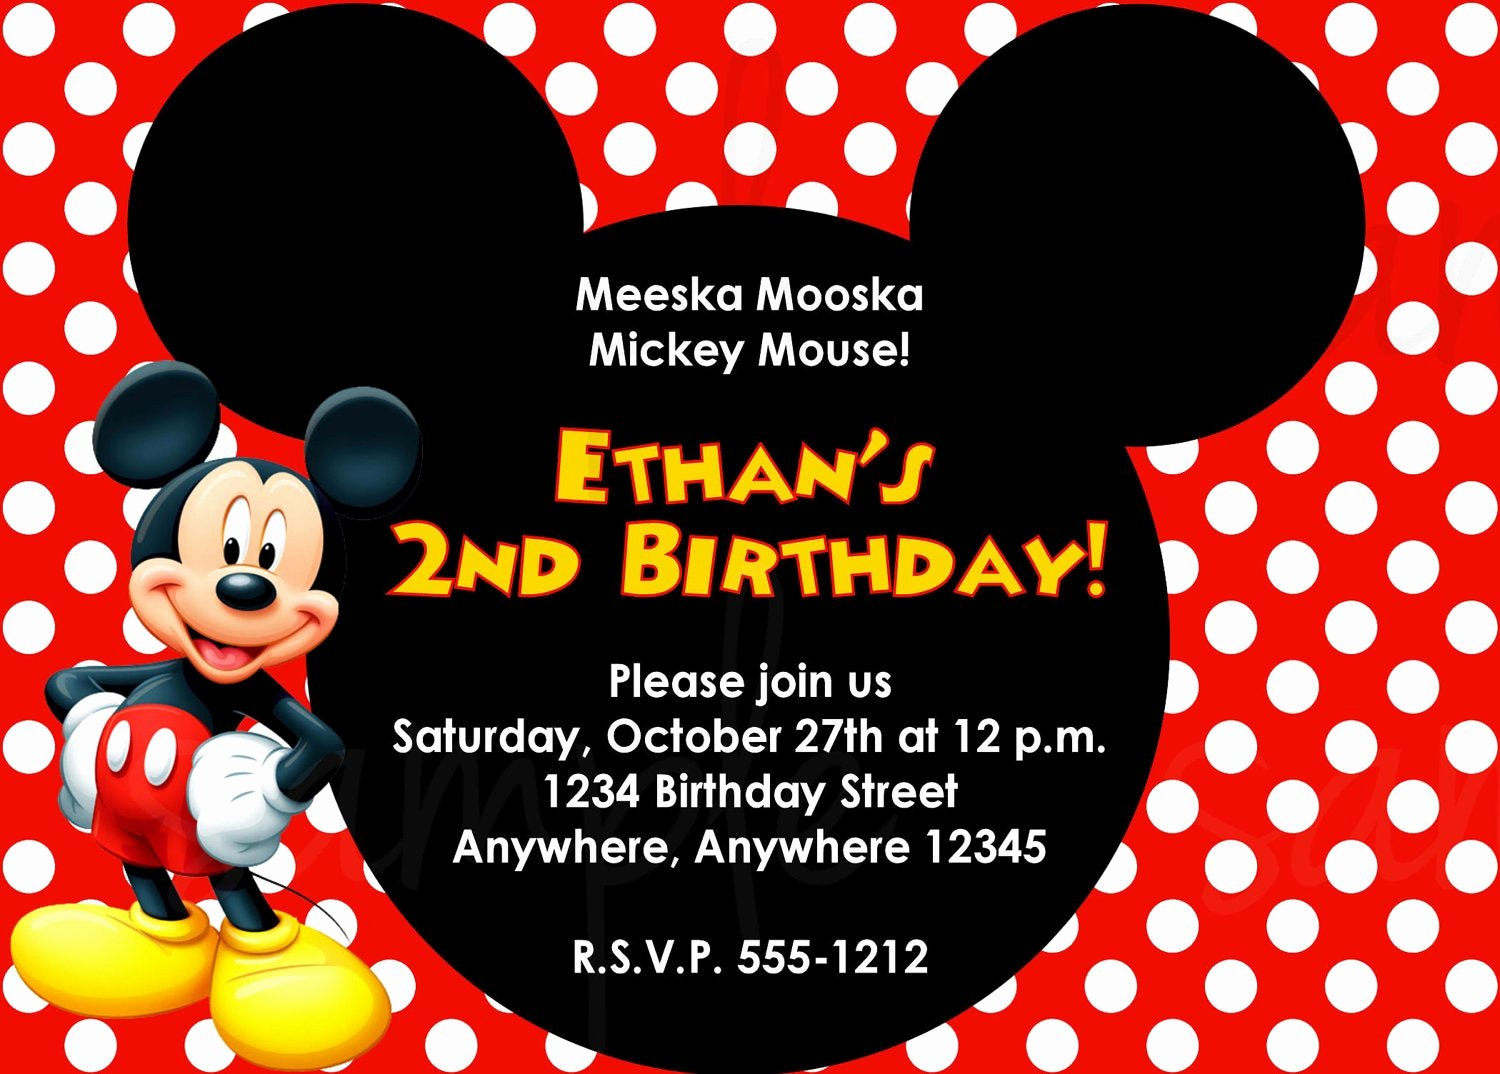 Mickey Mouse Picture Invitations Inspirational Mickey Mouse Birthday Invitation